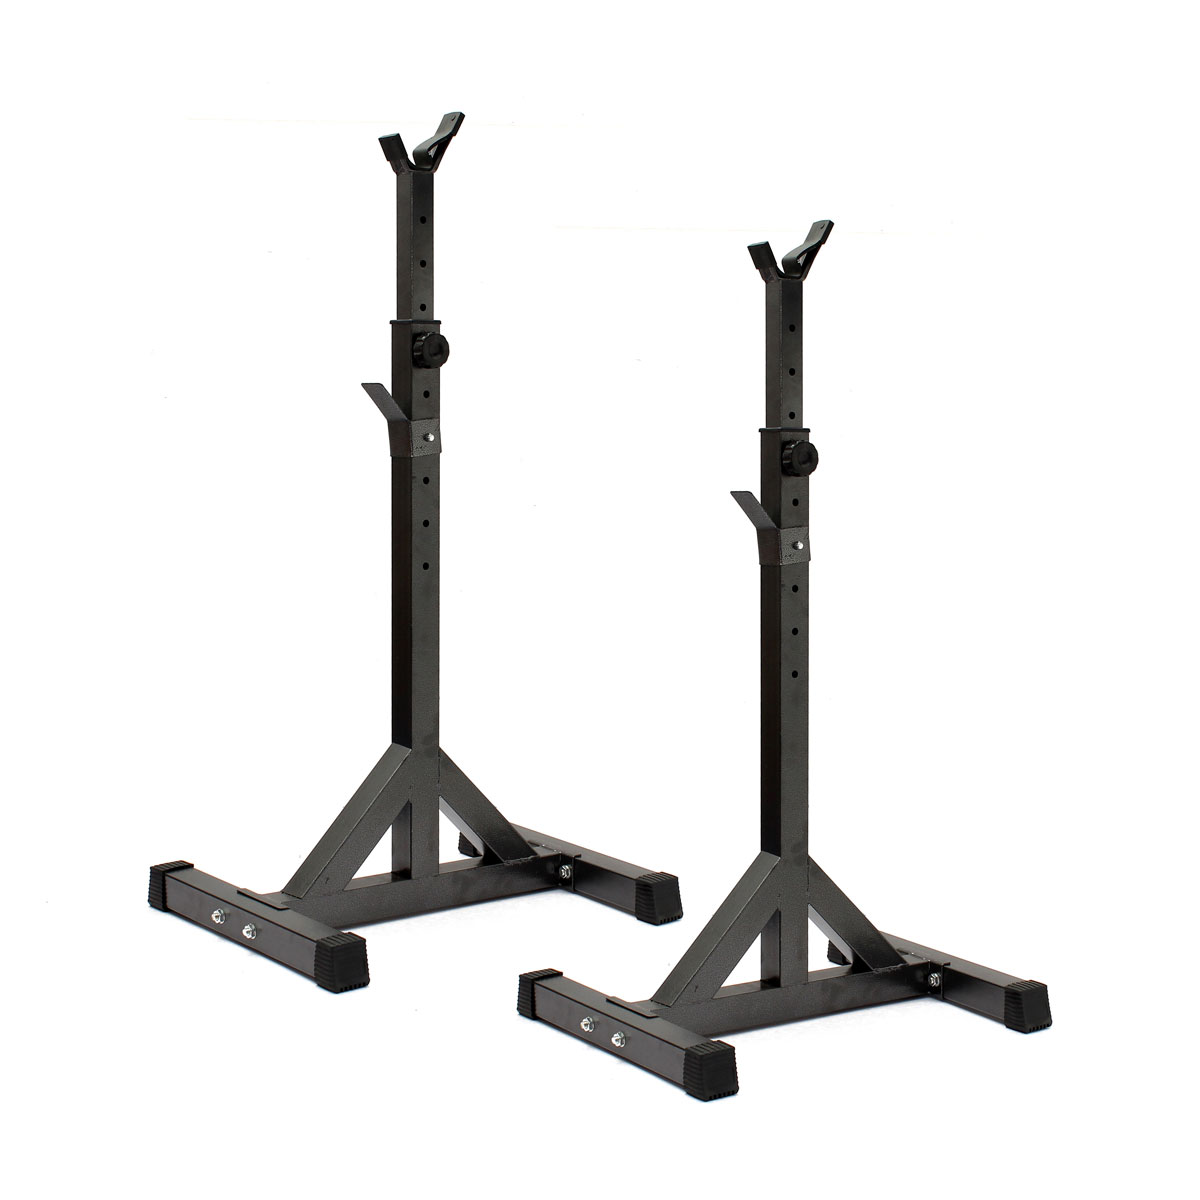 Adjustable Heavy Duty Squat Rack Bench Press Weight Lifting Barbell Power Stand Ebay